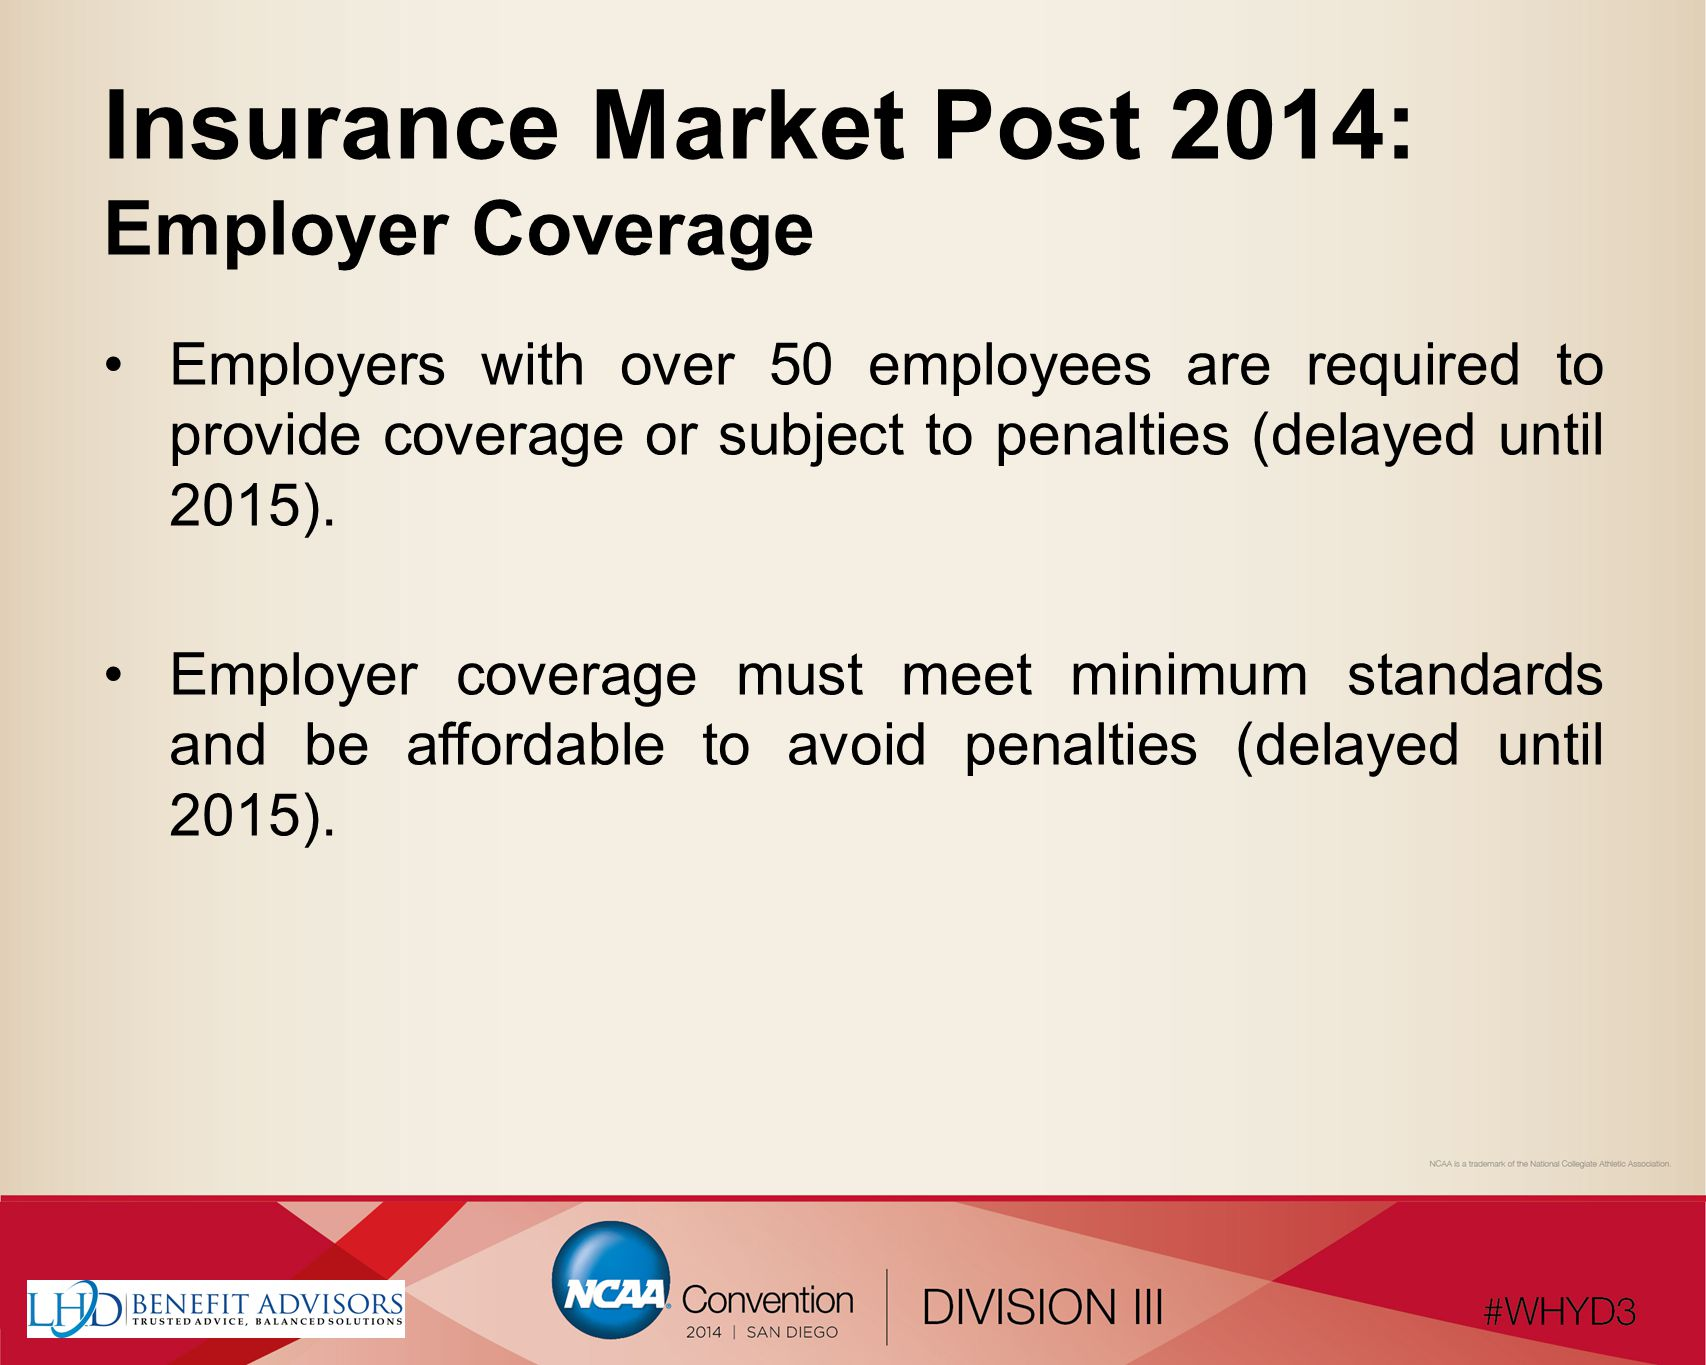 Insurance Market Post 2014: Employer Coverage Employers with over 50 employees are required to provide coverage or subject to penalties (delayed until 2015).